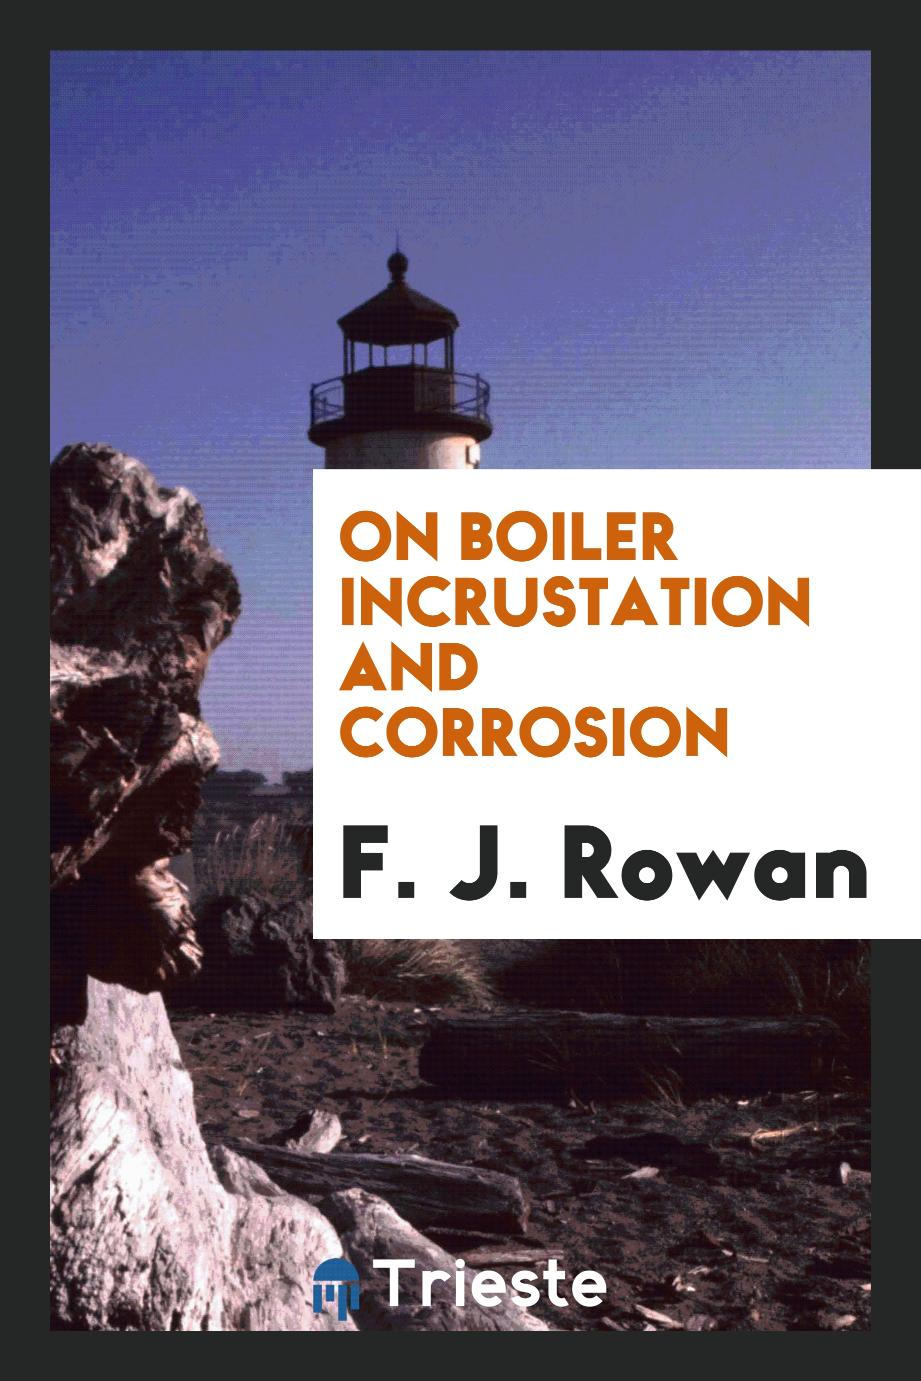 On Boiler Incrustation and Corrosion